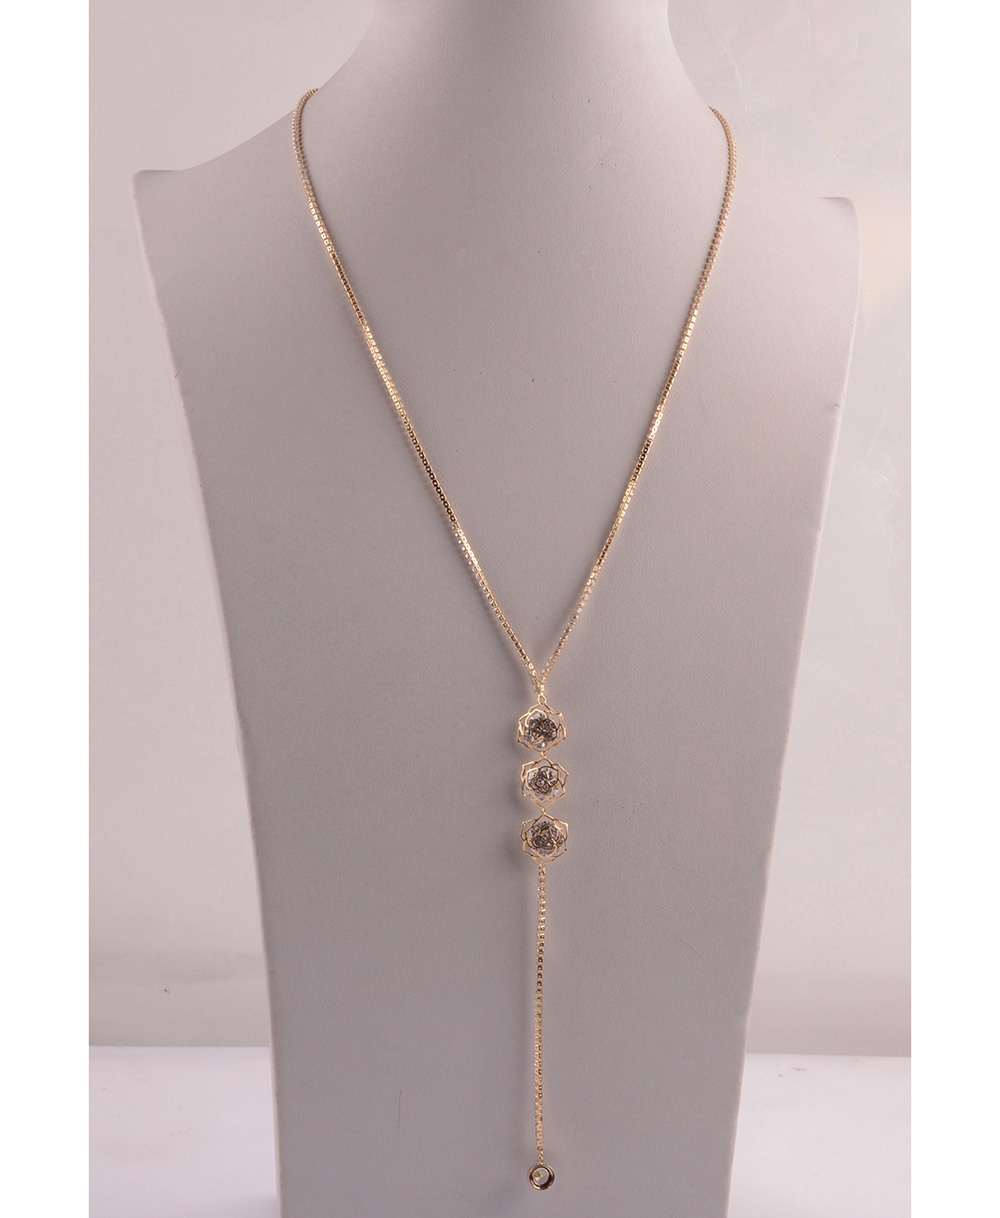 907541 Lady Long Necklace